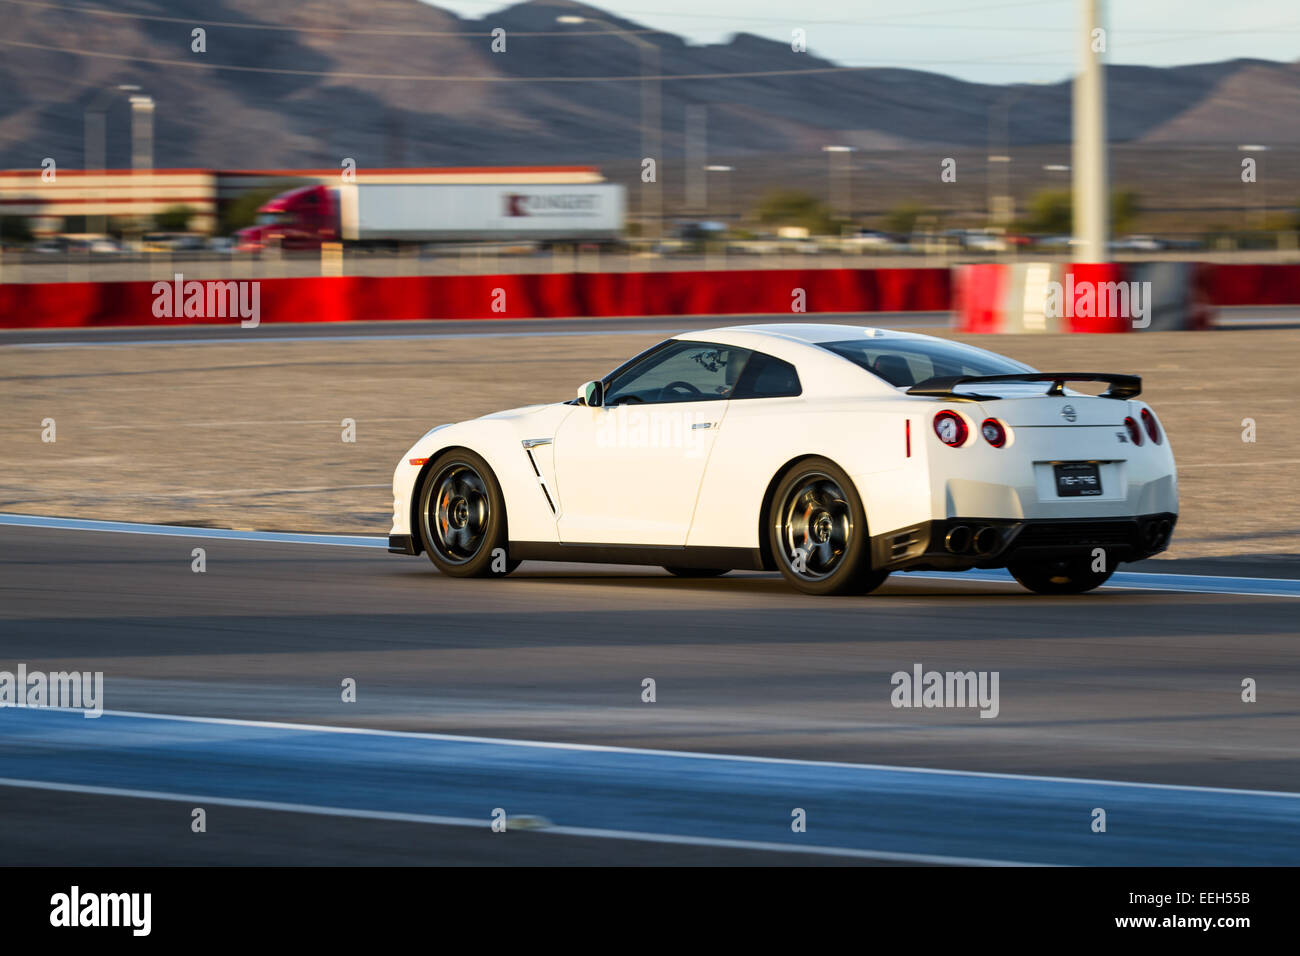 las vegas nevada - december 09 : nissan gtr going around the track